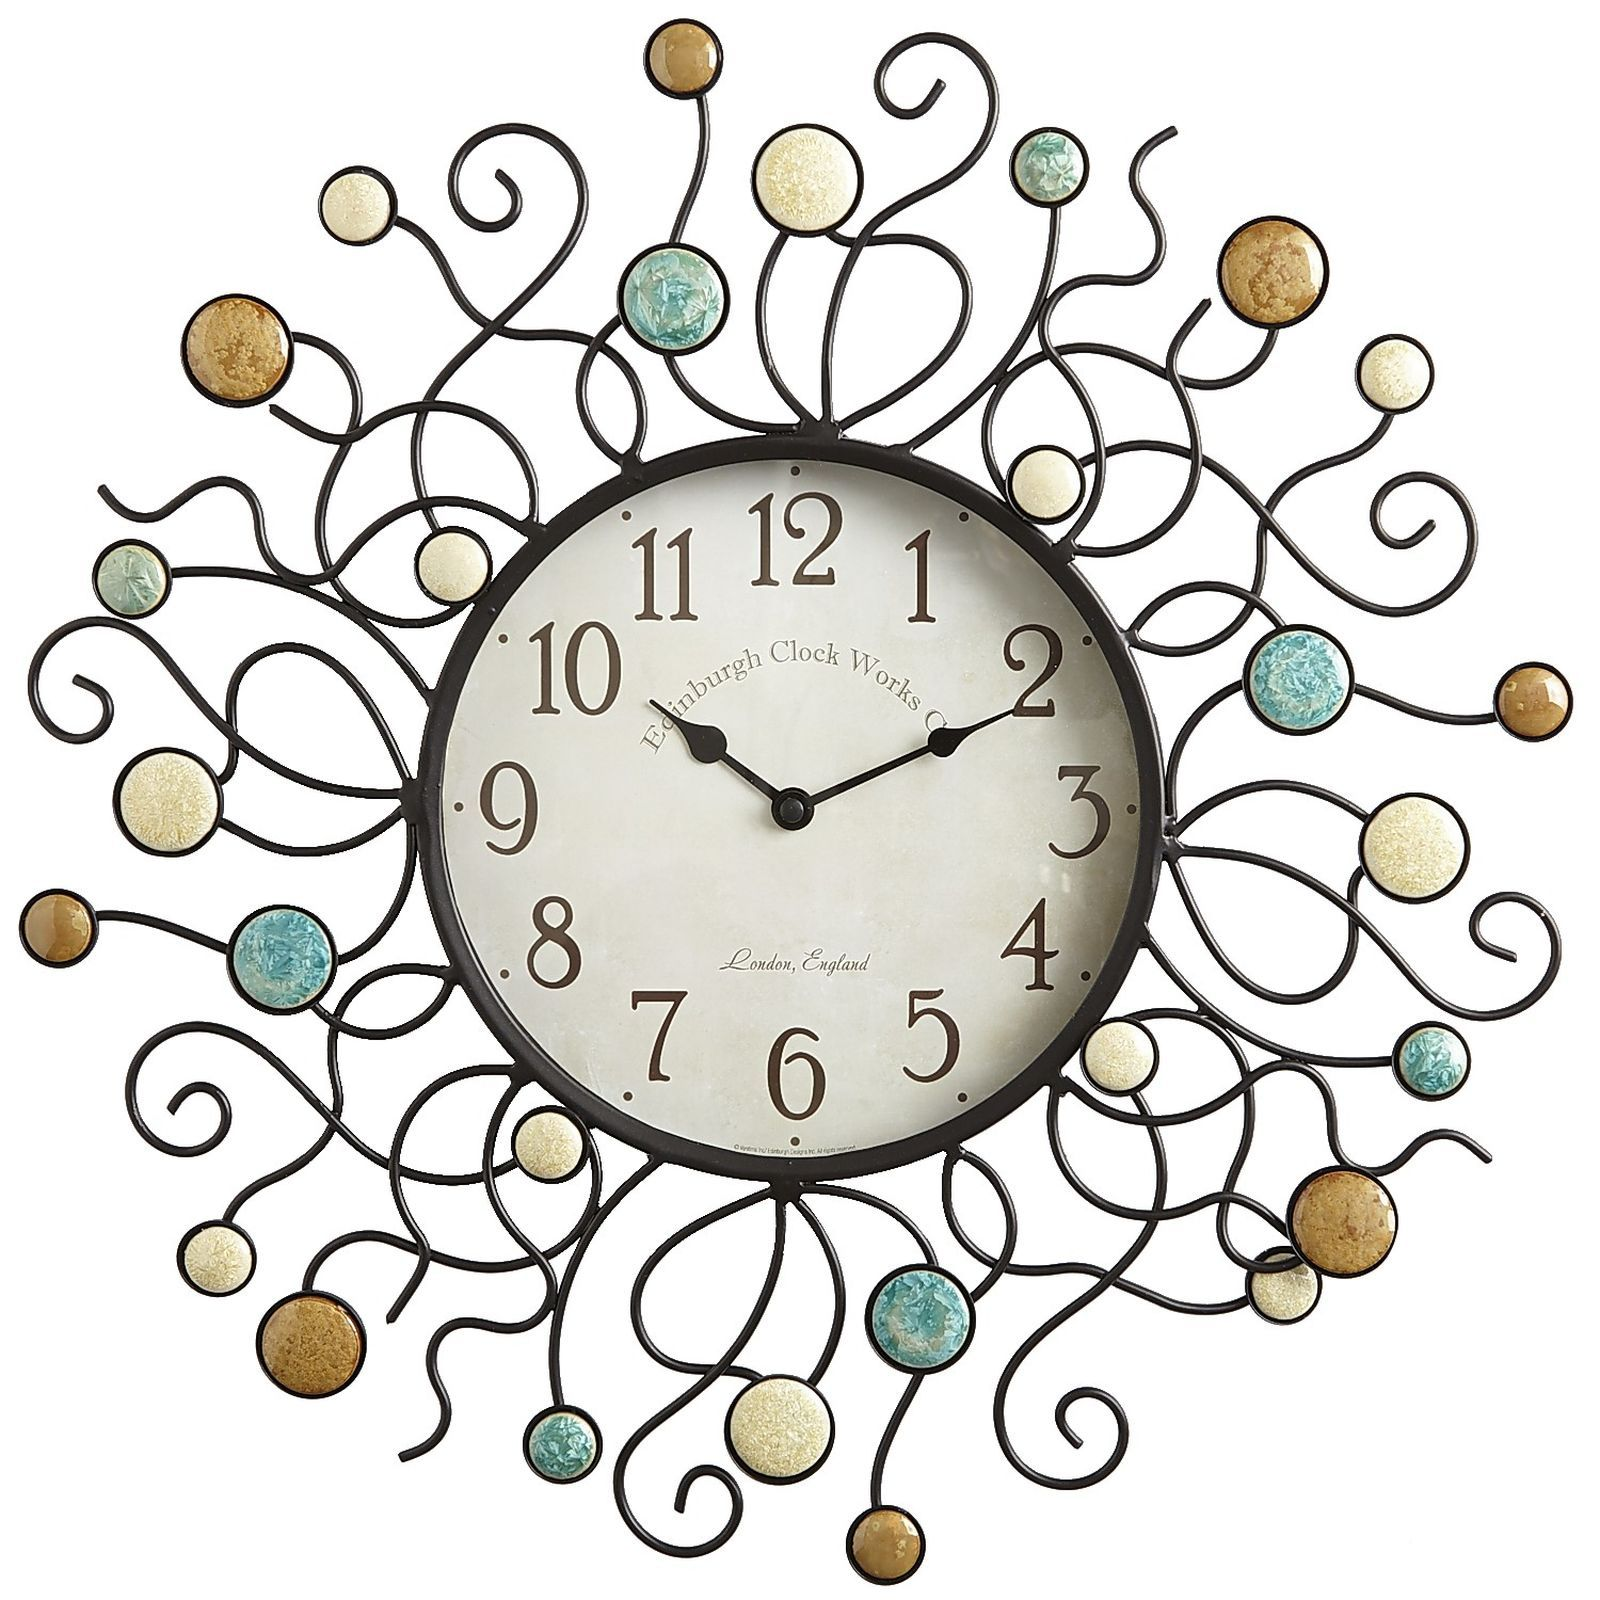 If you've always imagined time as a living vine in full bloom with opportunities, you're going to love this clock. You'll also love it if your outdoor decor features the teals, tans and ivories that are bursting out everywhere this season. If that's you, the time is at hand.